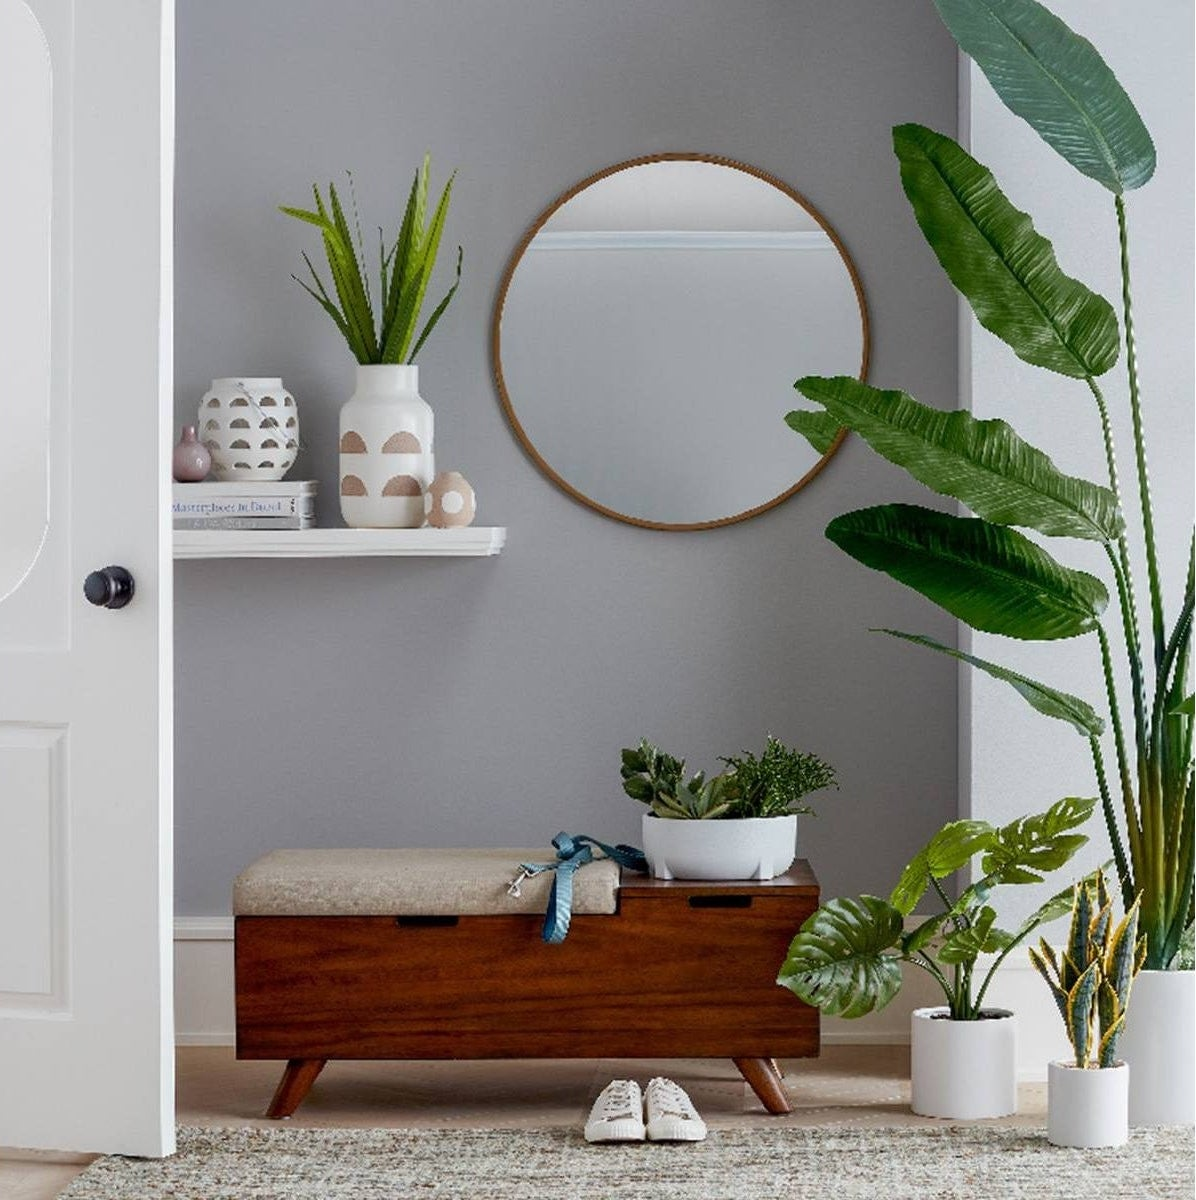 round mirror with gold frame hanging on a wall surrounded by plants